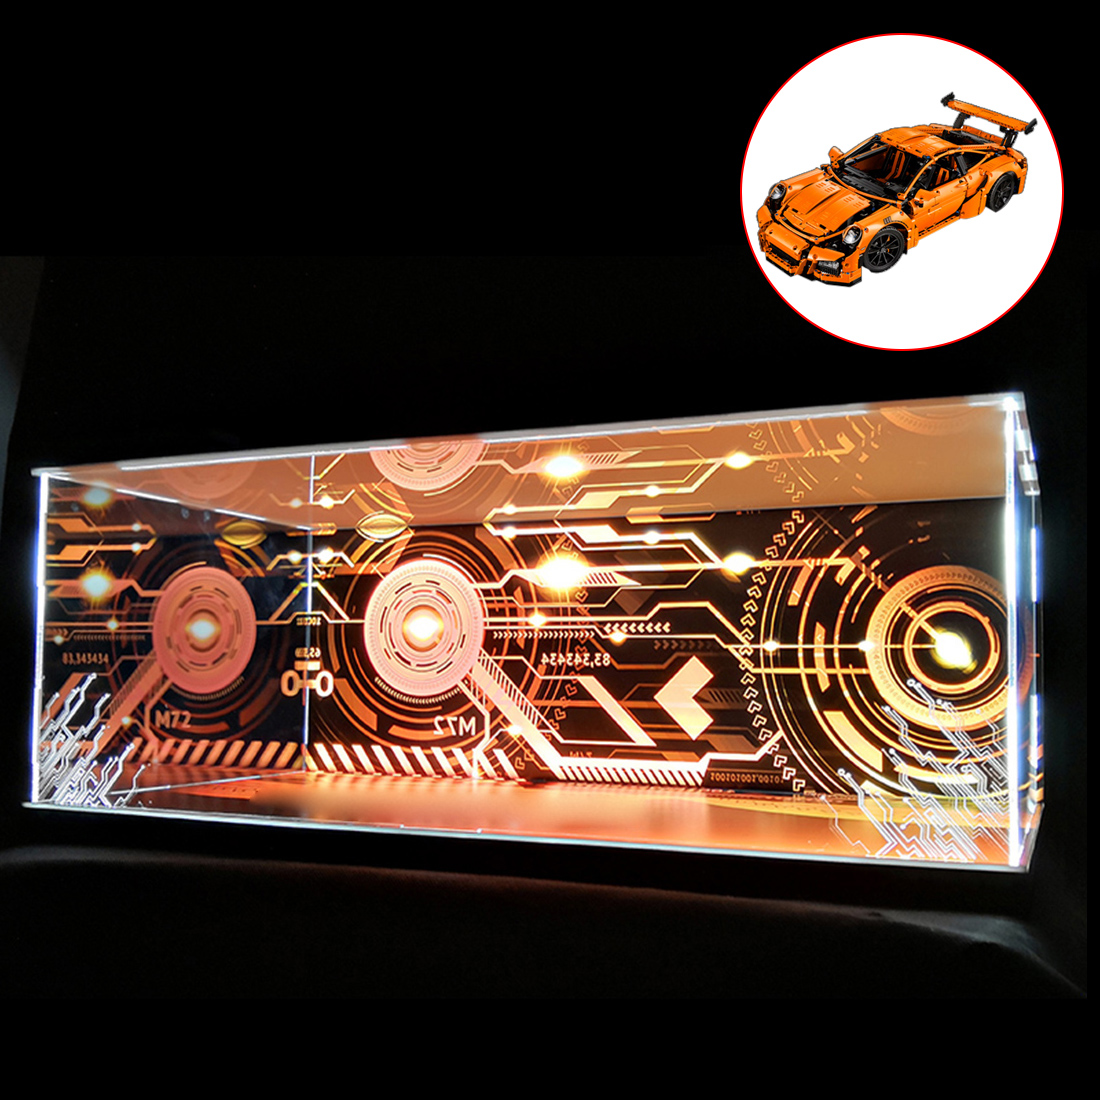 Building Block Acrylic Dustproof Display Box for 911 GT3 RS 42056 (Display Box Only, No Kit)- 3 Lights Rechargeable